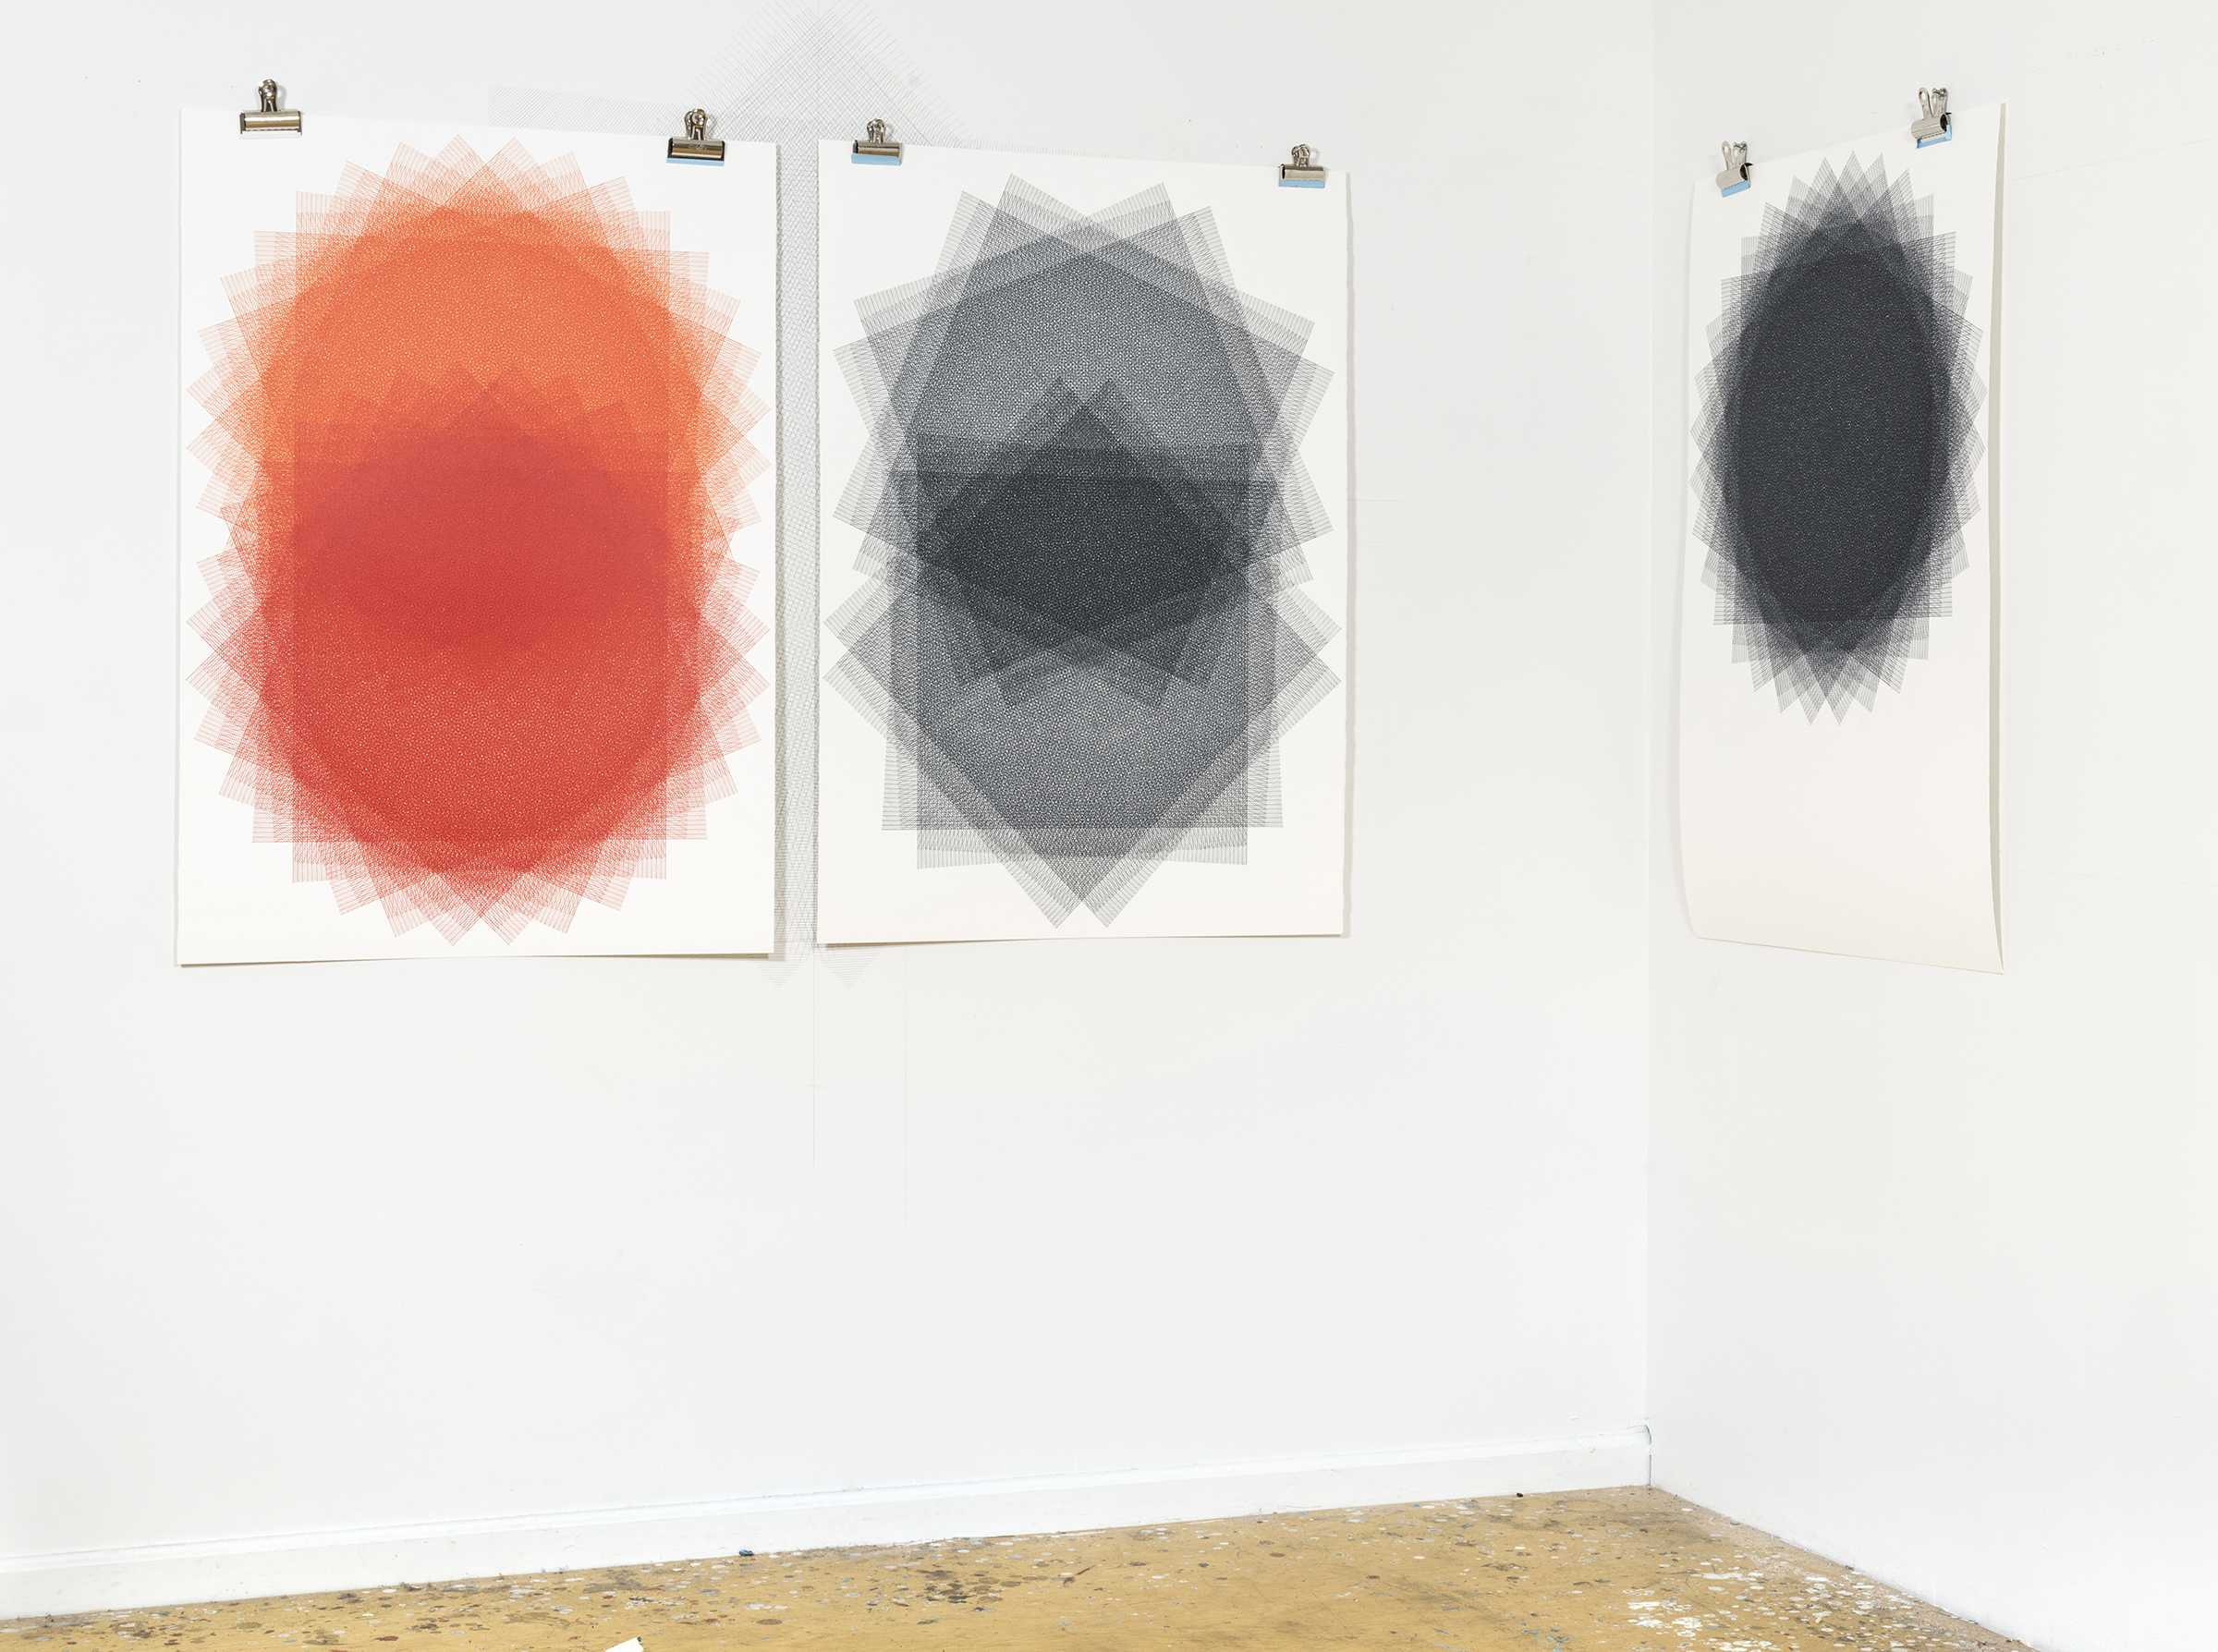 Drawings in Studio, 2017